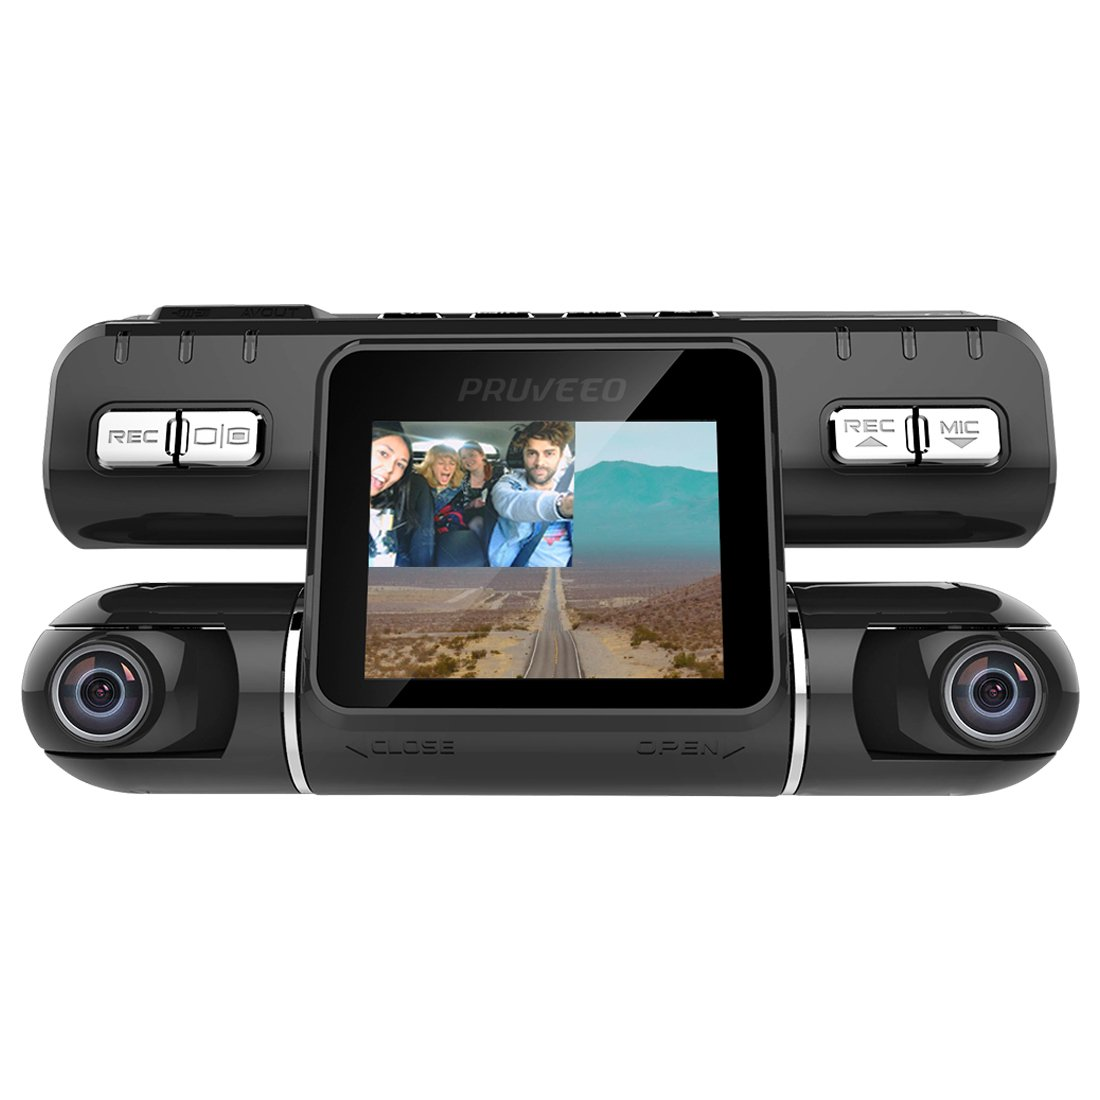 Pruveeo MX2 Dash Cam Front and Rear Dual Camera for Cars, 240 Degree Wide Angle Driving Recorder DVR